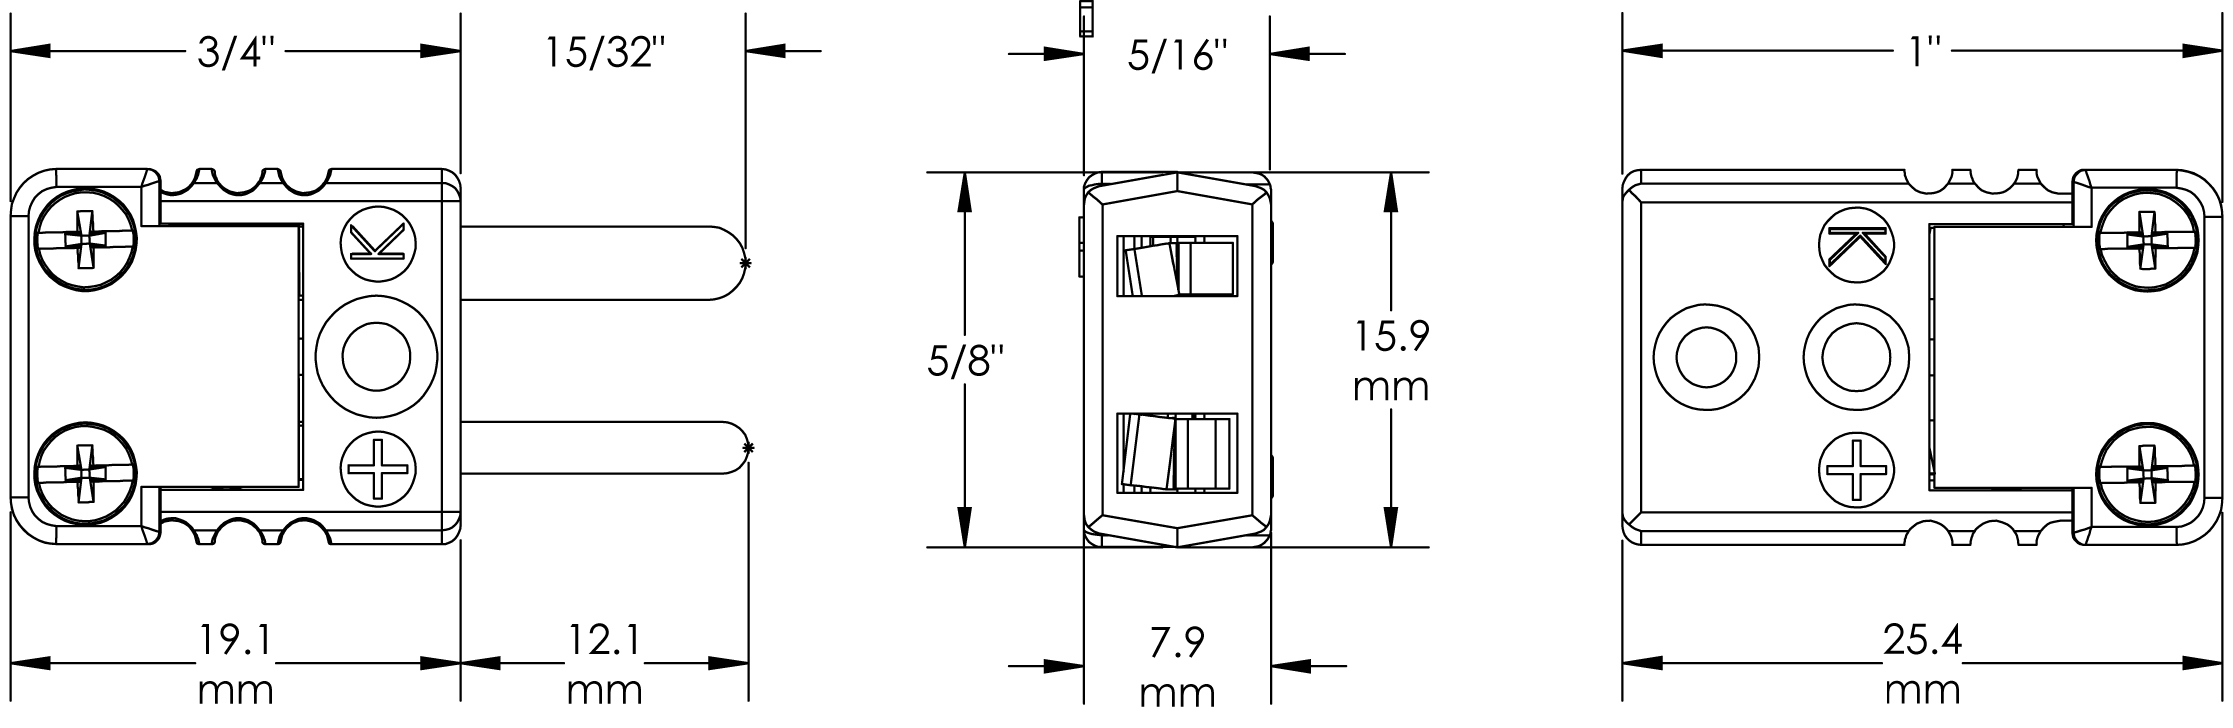 high-resolution-dimensions-mini-2-pole.jpg